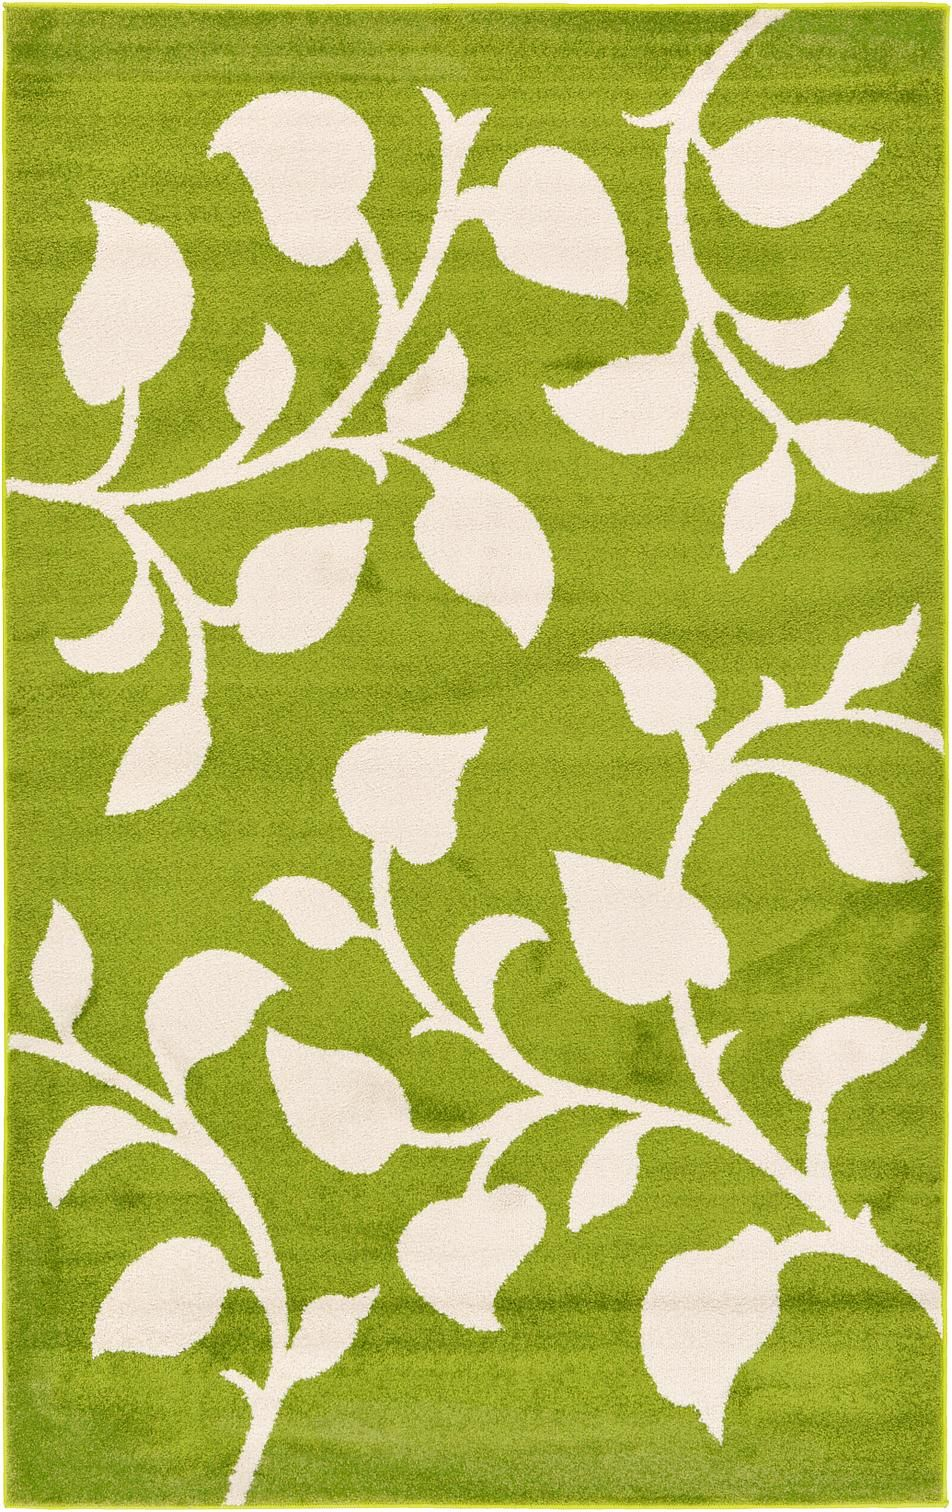 Green 155cm x 245cm frieze rug area rugs rugsca